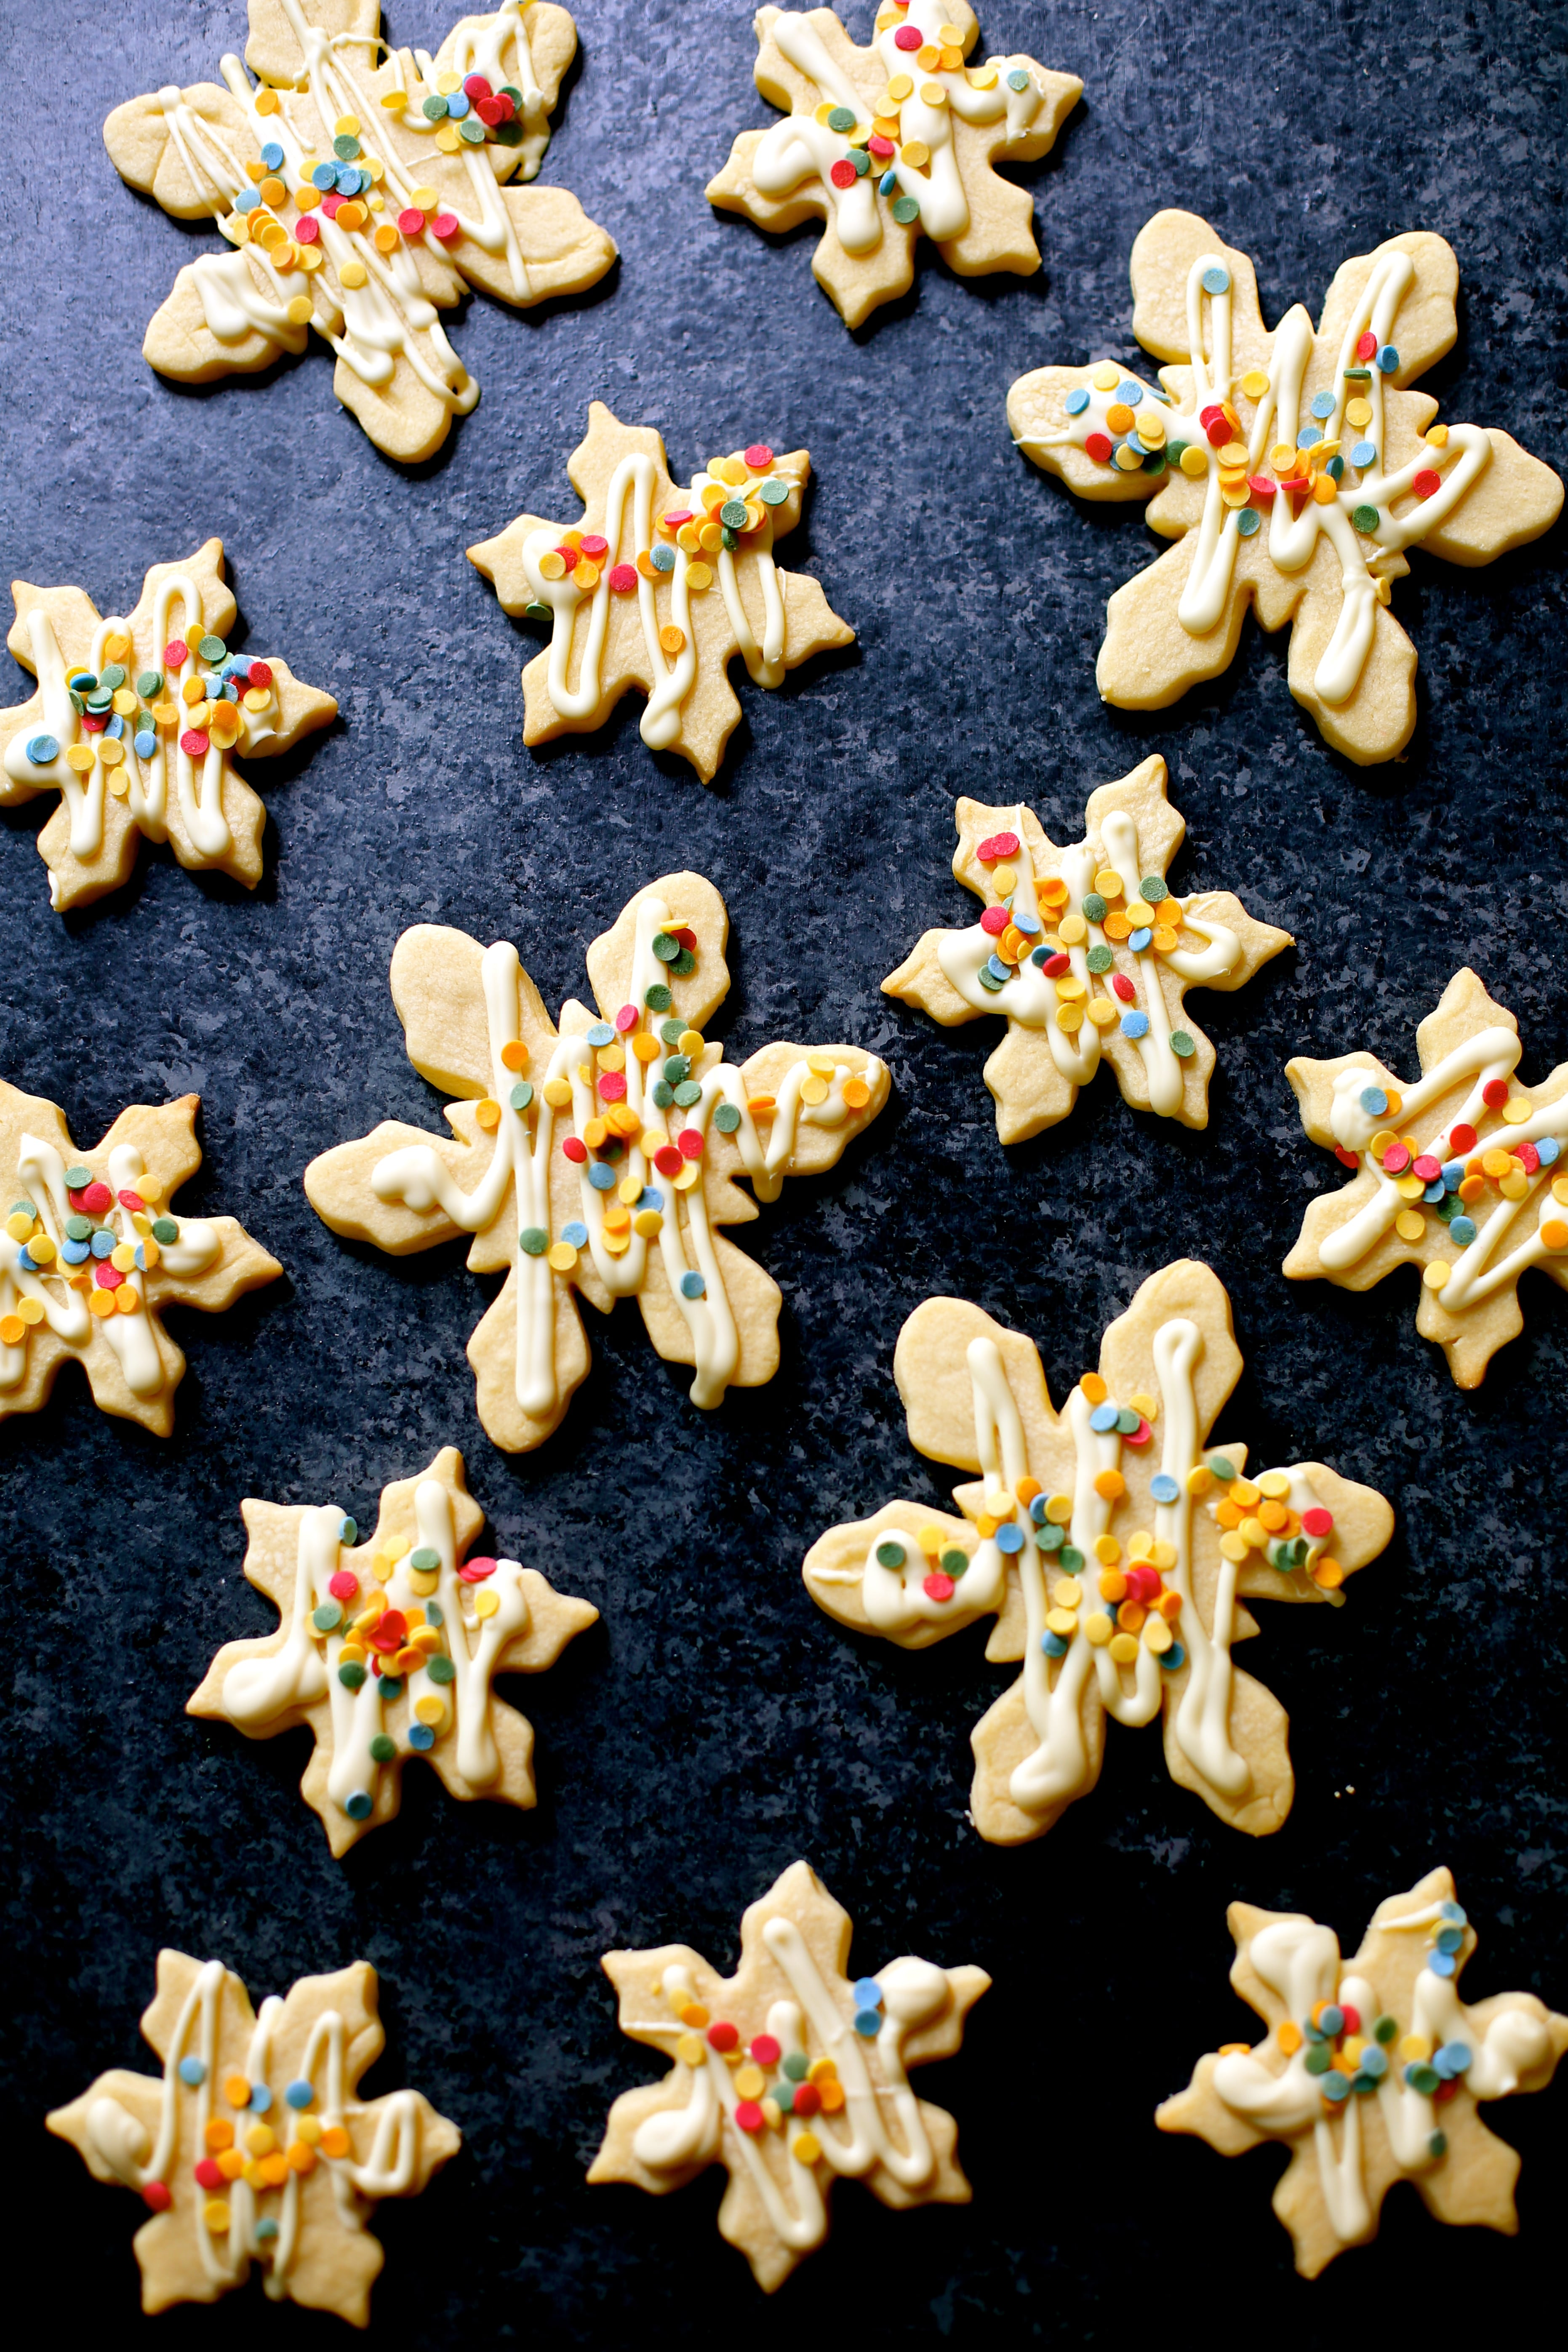 decorated cookies on a black background